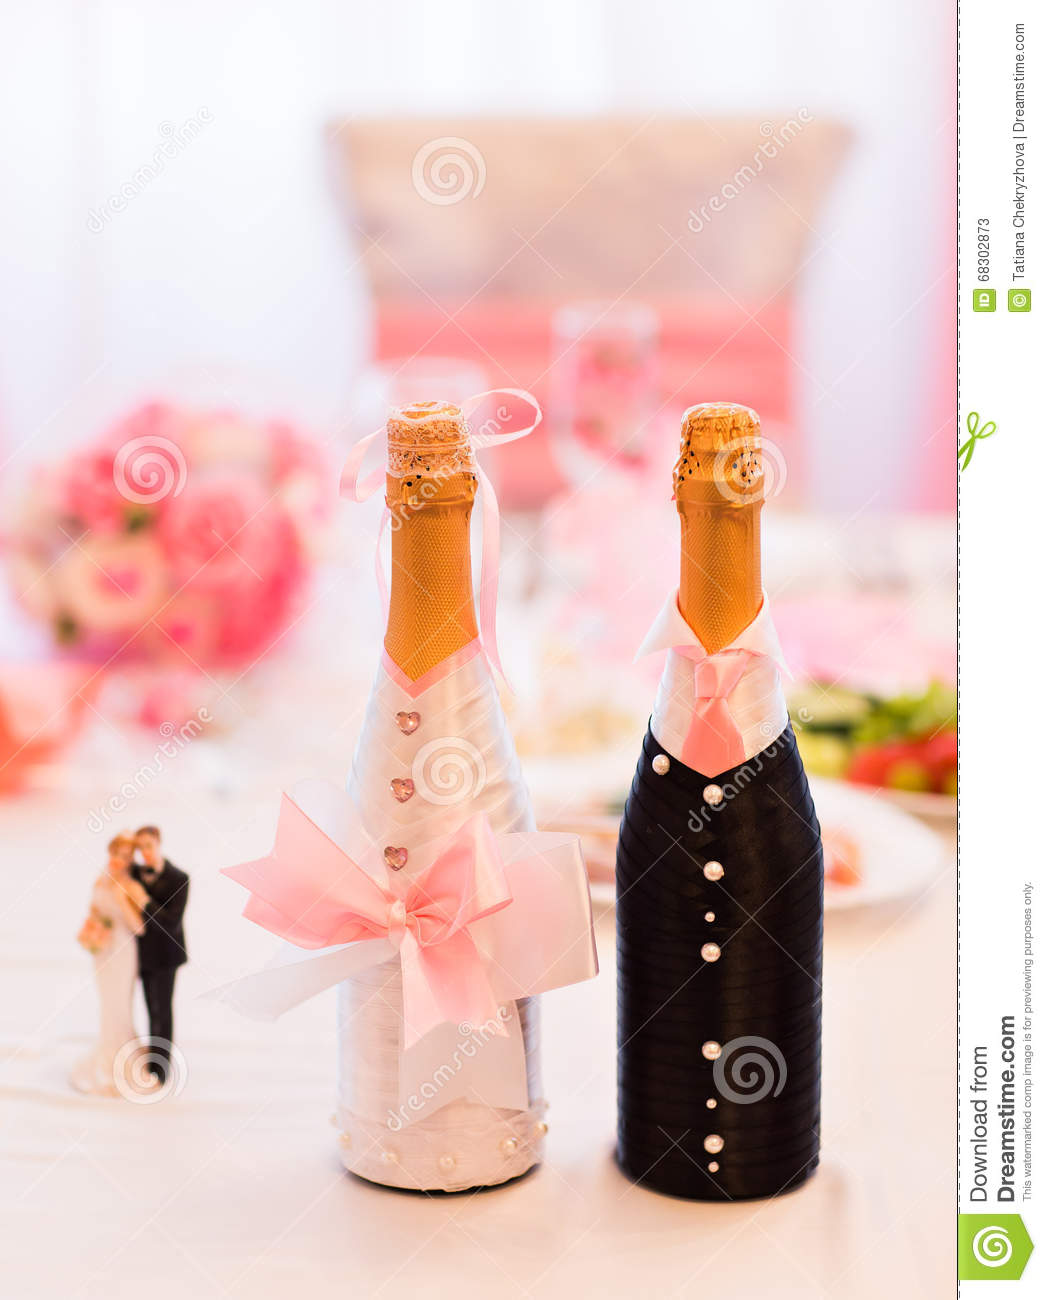 Champagne Bottles Decoration For Wedding Day Stock Image - Image of ...